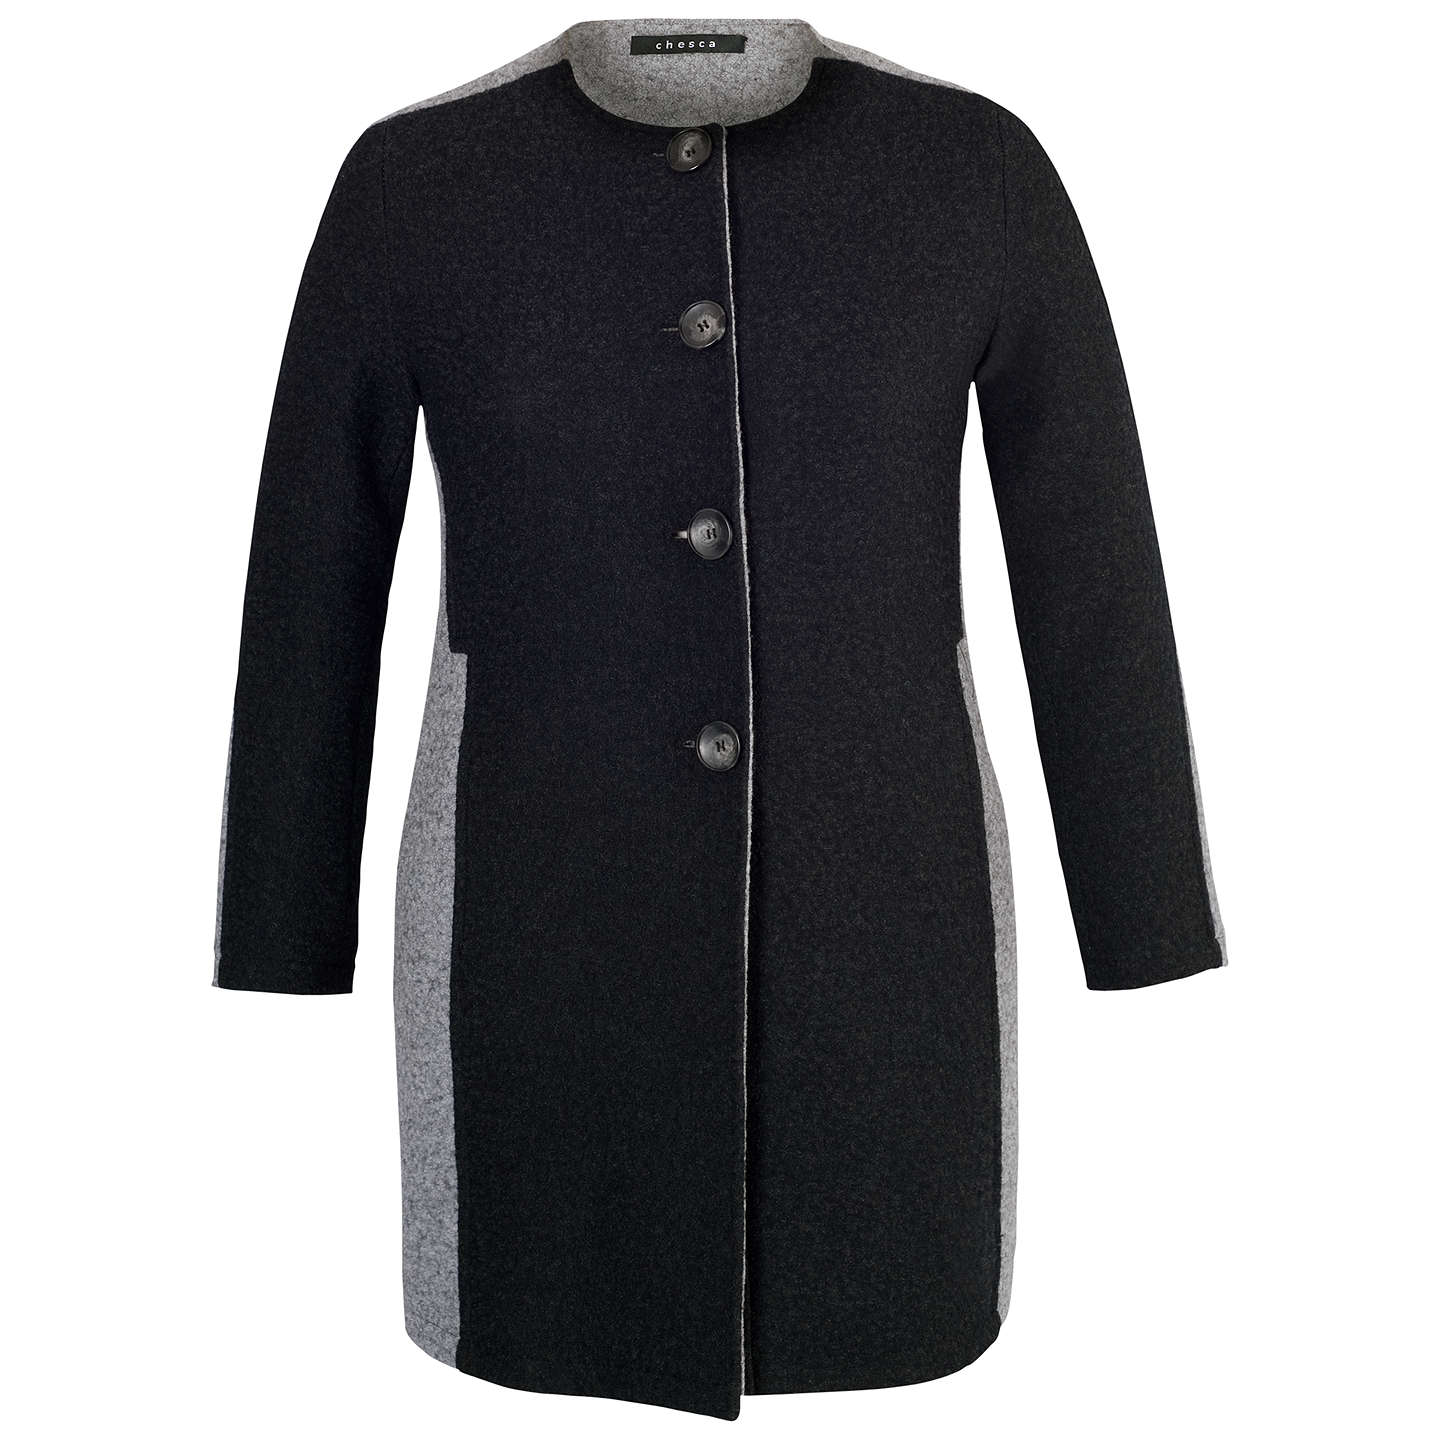 BuyChesca Collarless Coat, Charcoal, 12-14 Online at johnlewis.com